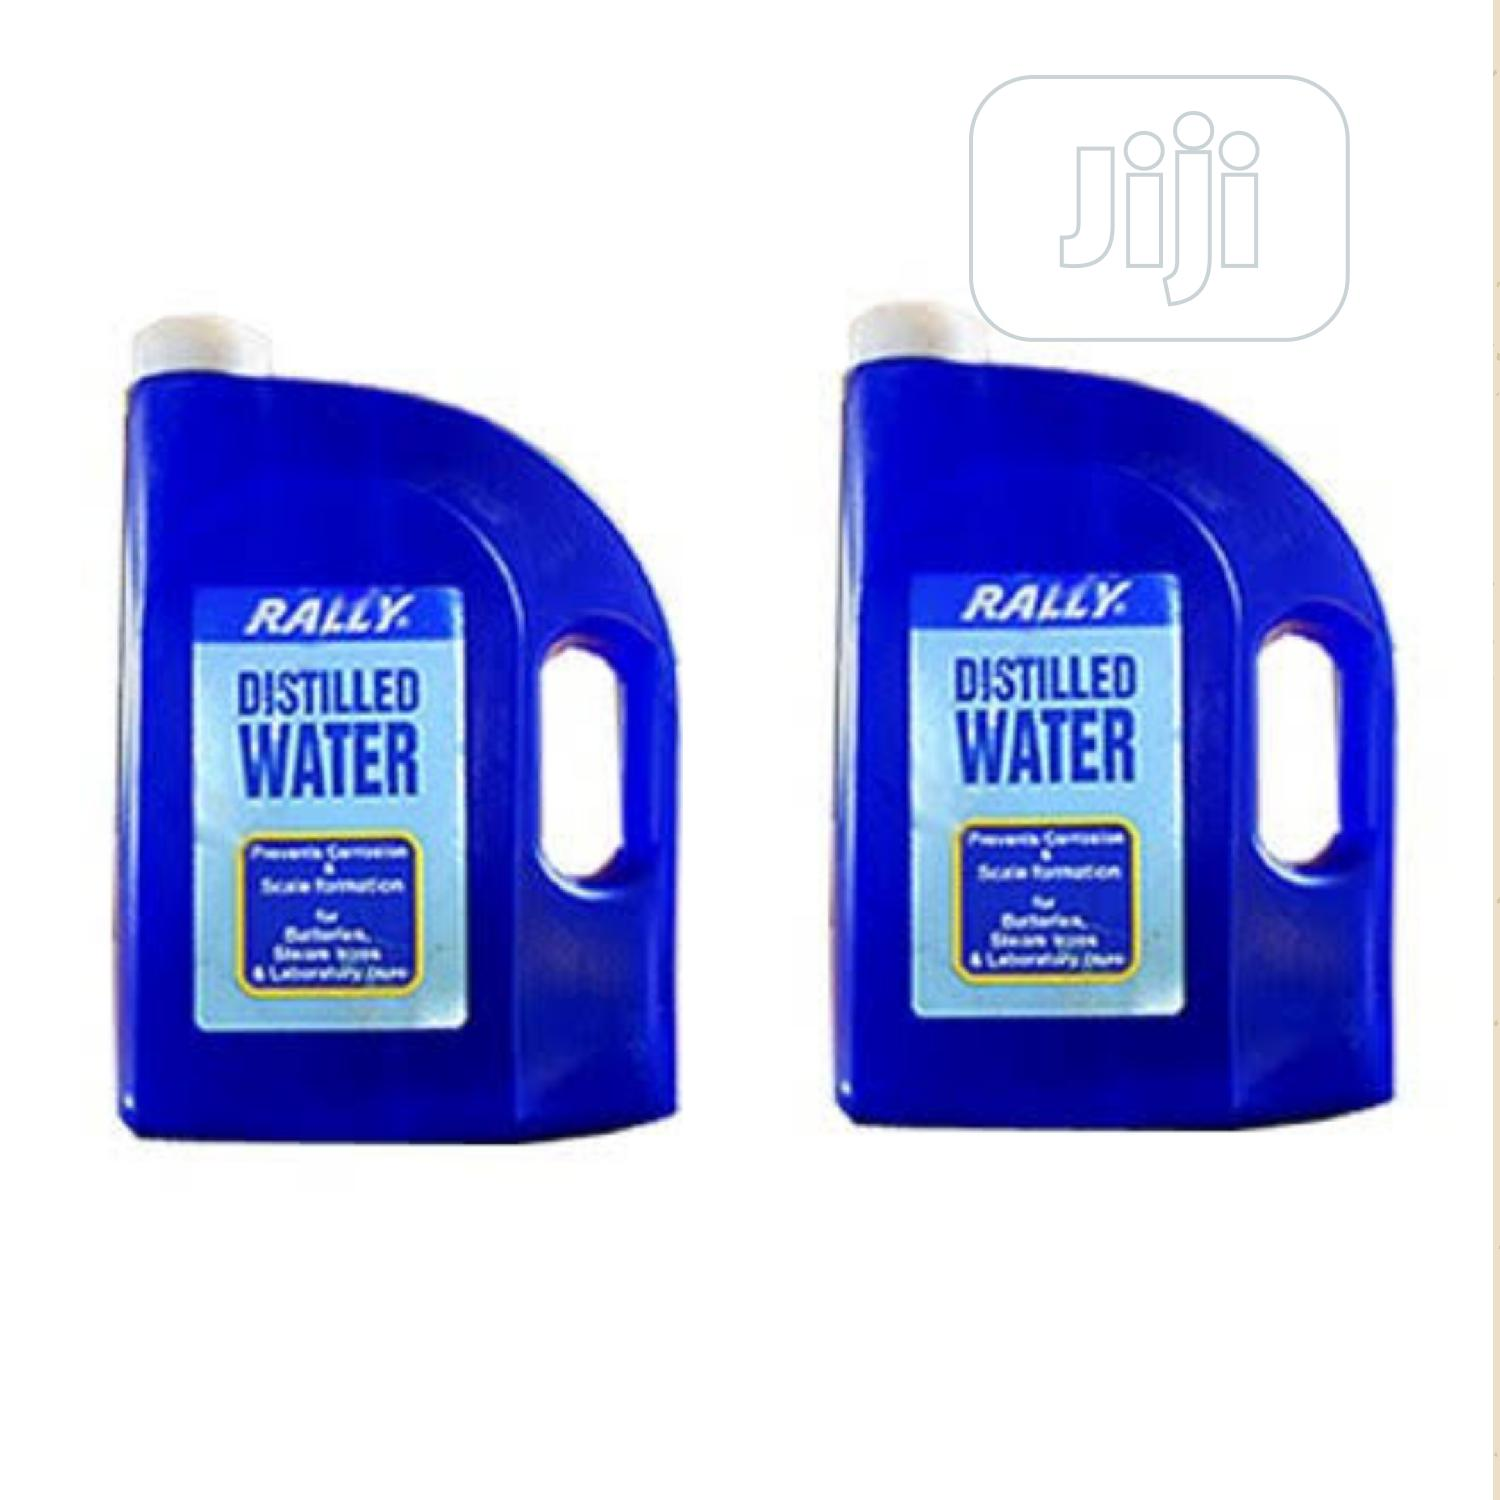 Rally Distilled Water